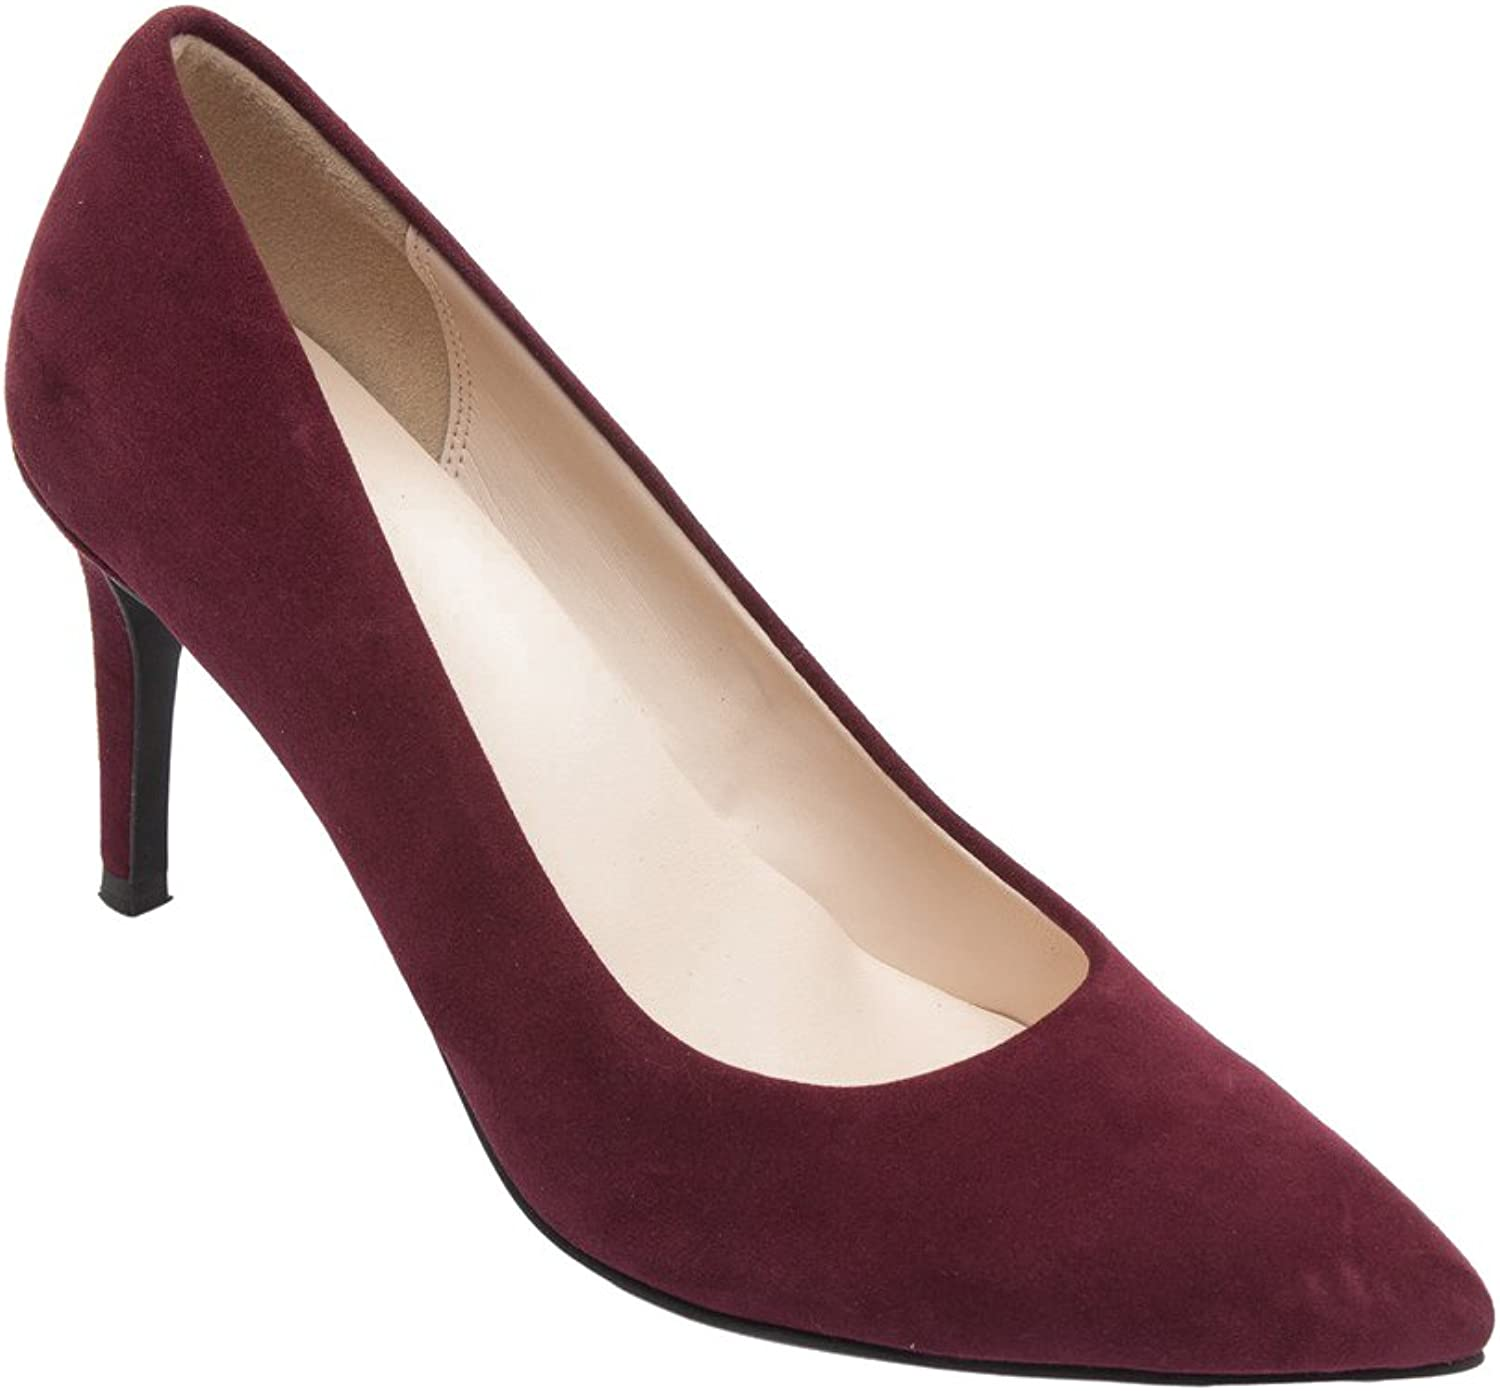 PIC PAY Lucia - Women's Pointy Toe Pumps - Elegant Suede Leather Stiletto High Heel shoes Plum Suede 7M